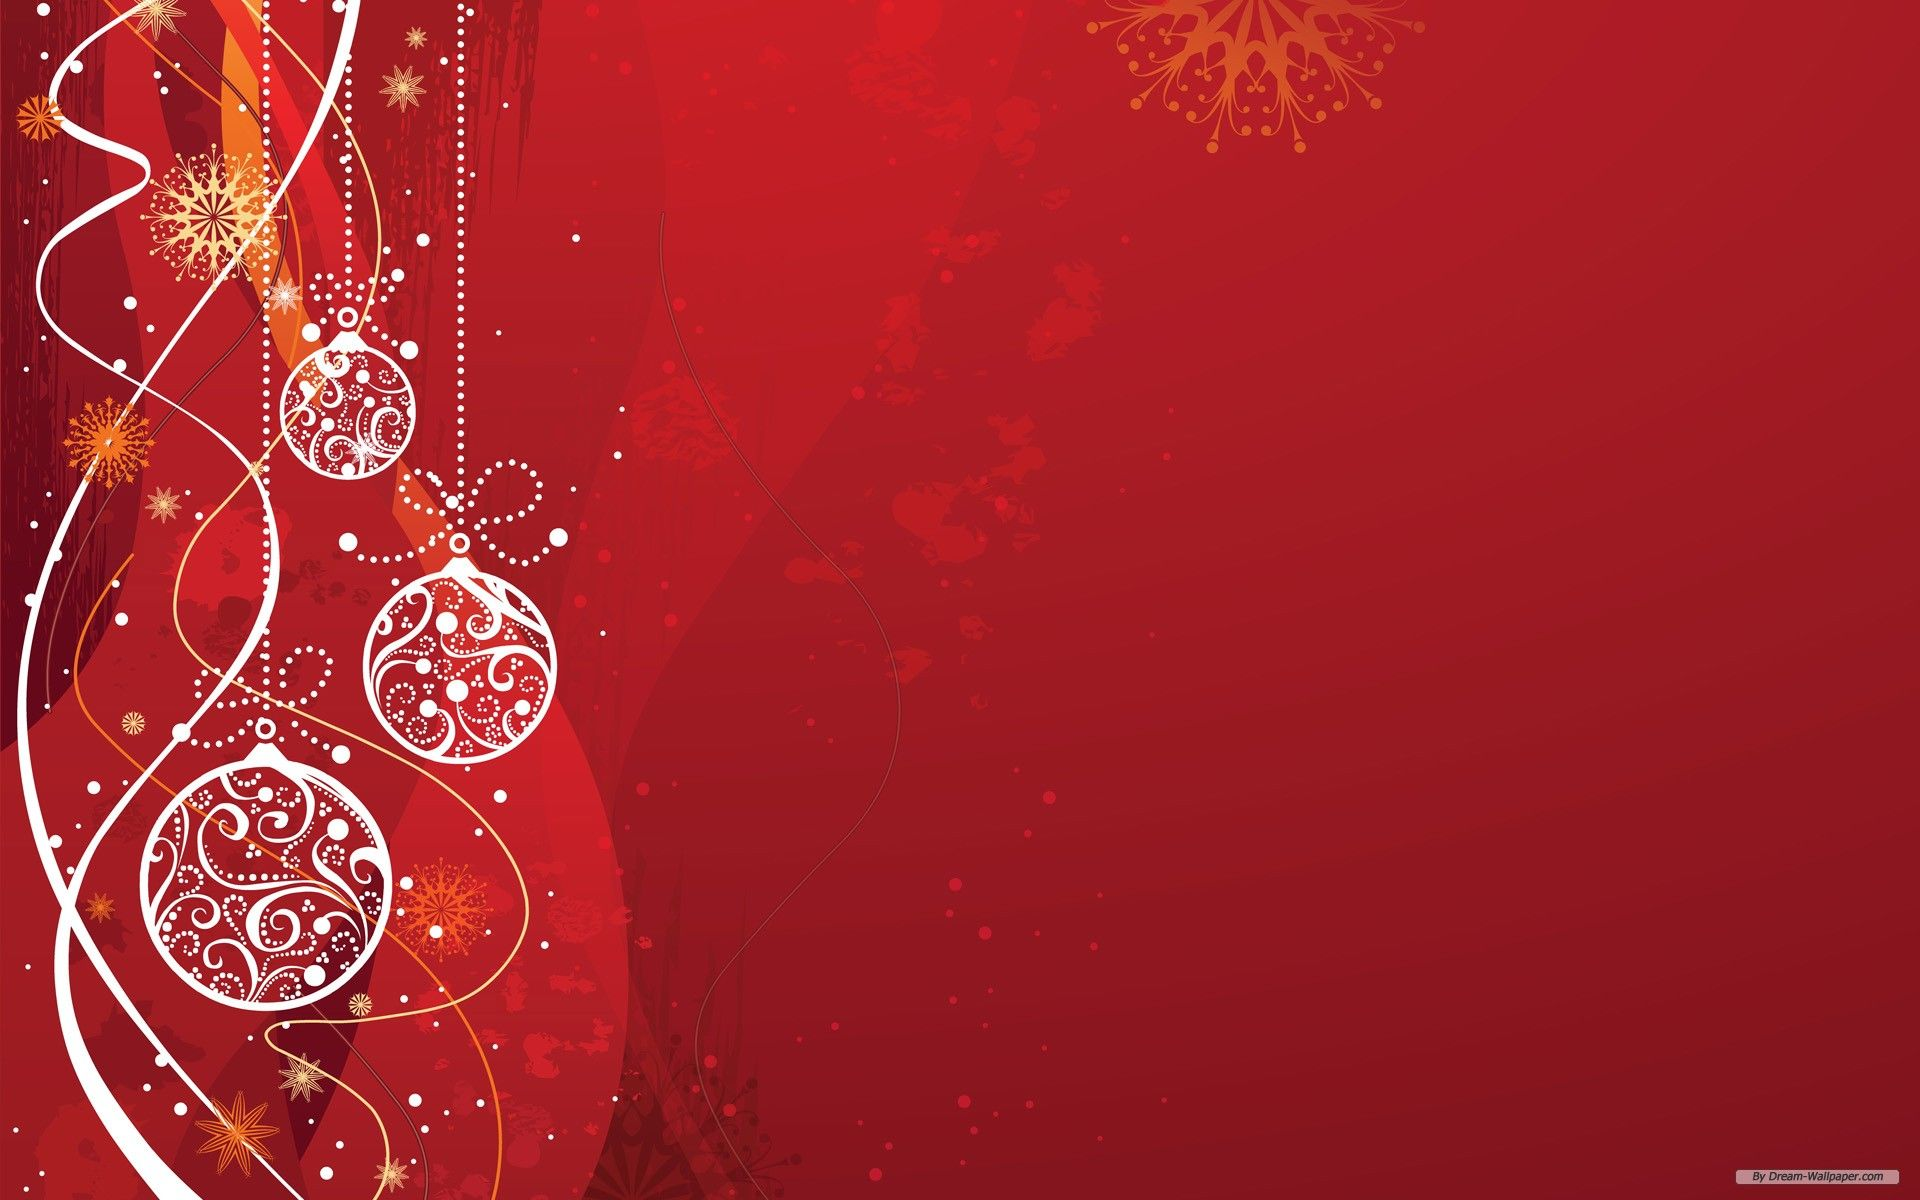 Free Holiday Wallpapers Live Free Holiday Photos Pc Guoguiyan X Holiday Wallpapers Free  Wallpapers Adorable Wallpapers